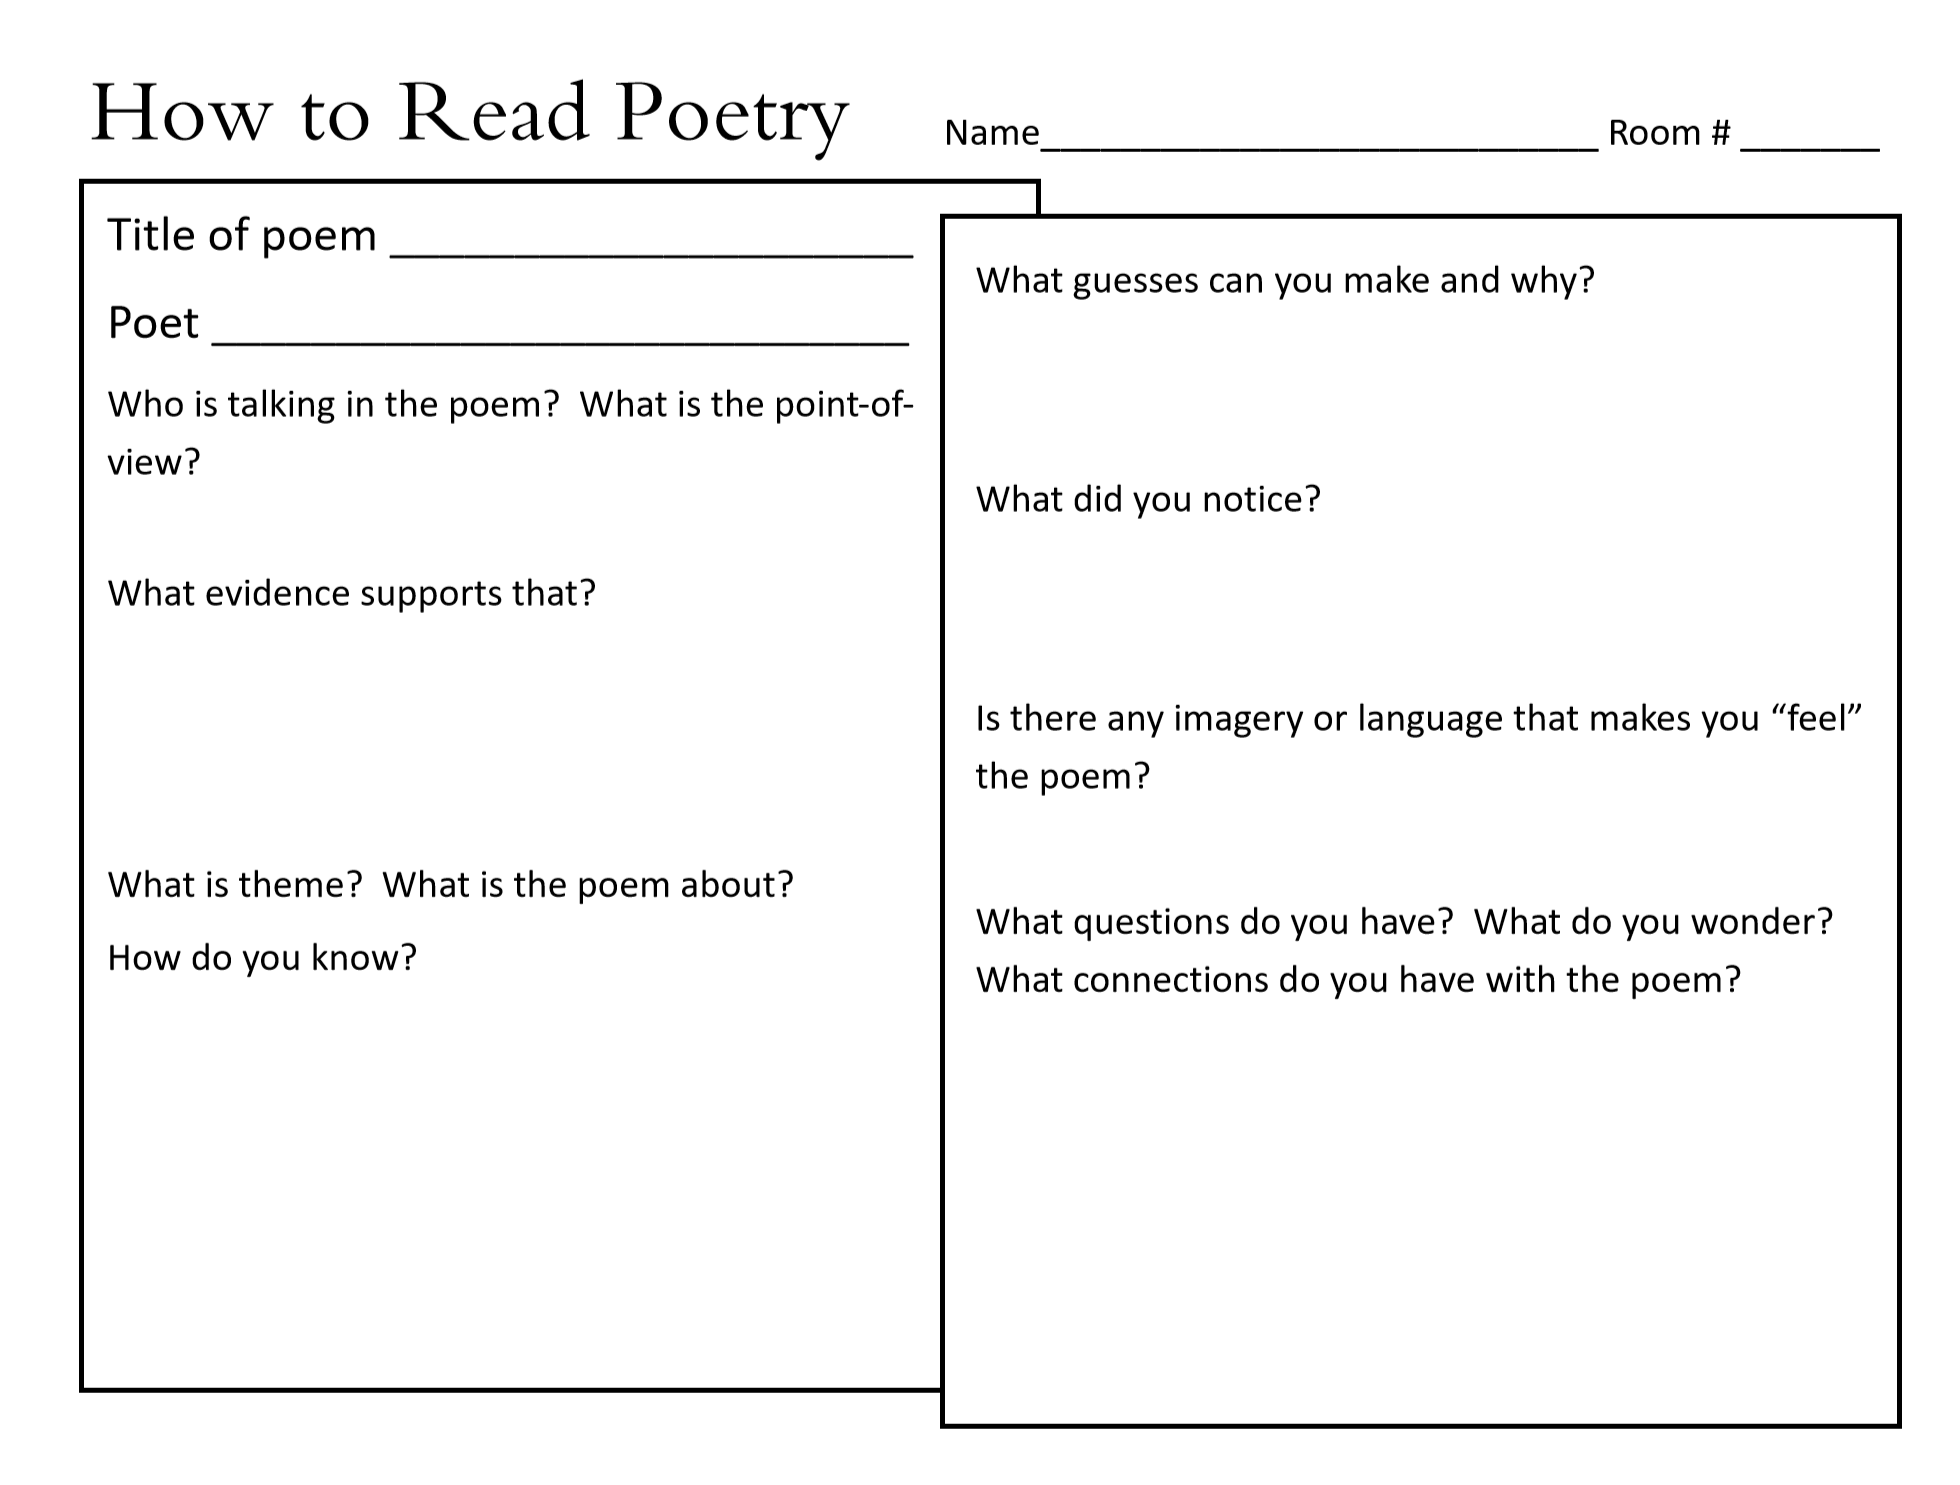 How To Read Poetry Is A Graphic Organizer Designed To Help